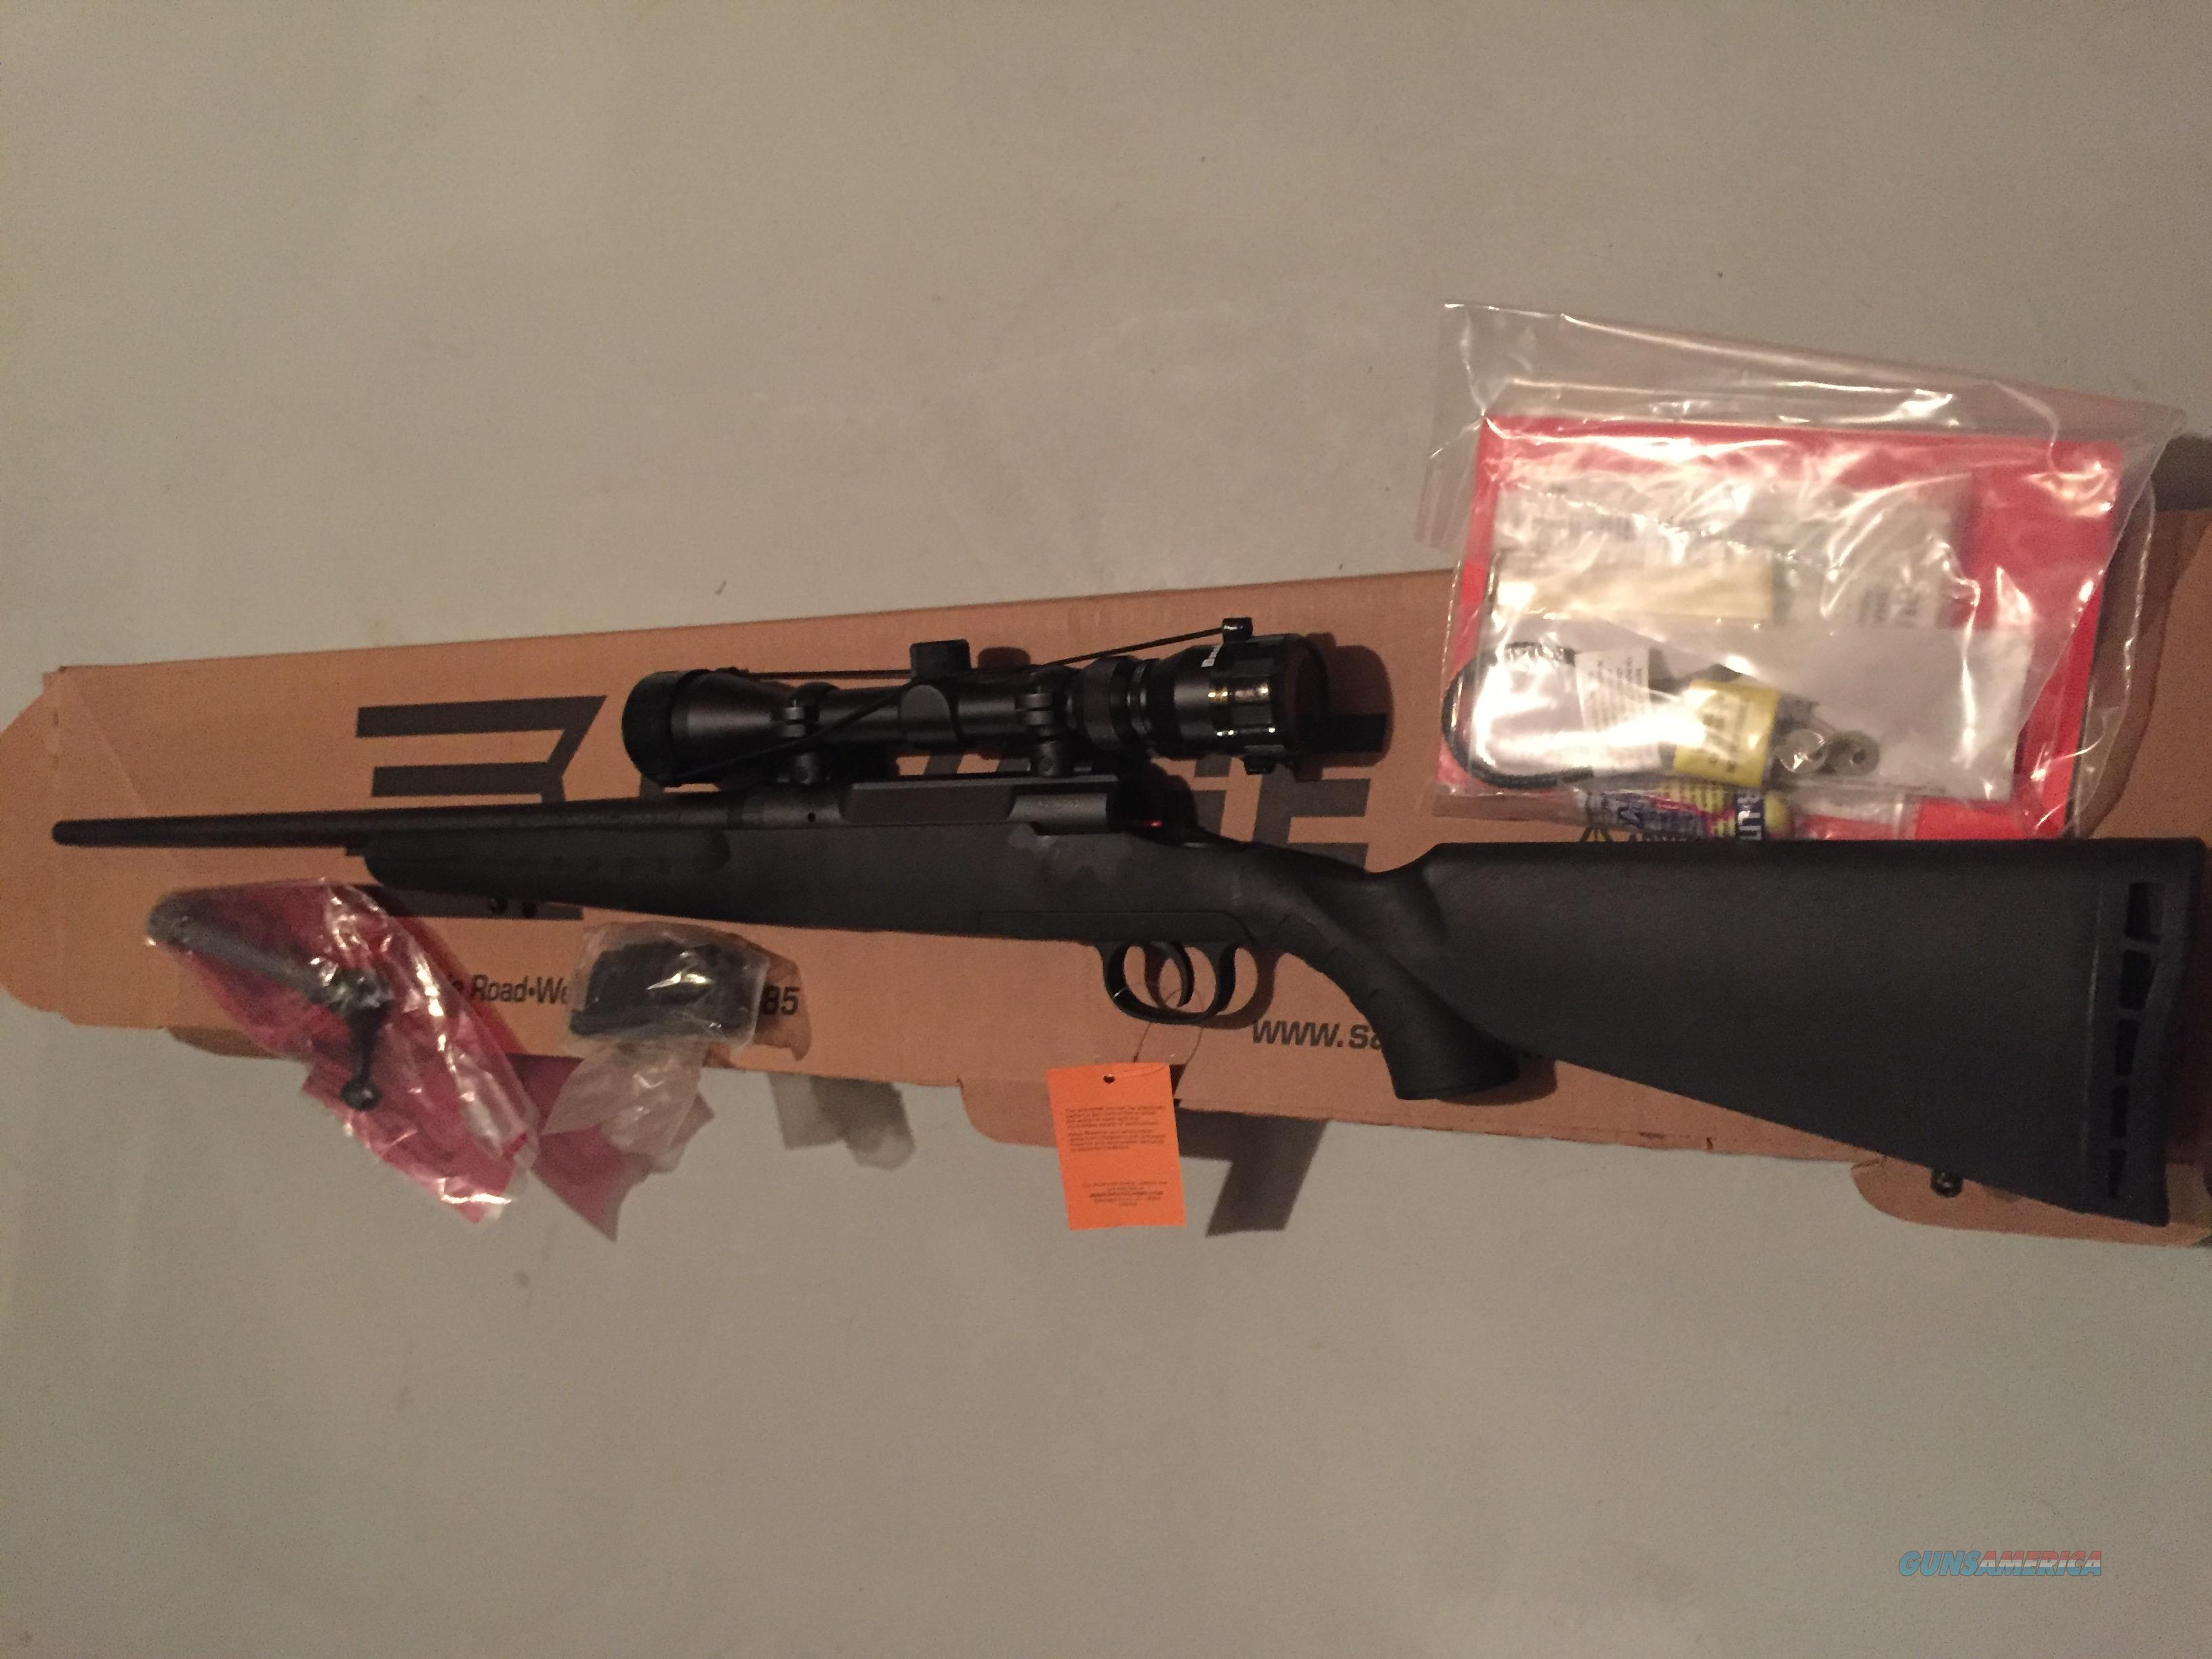 NEW Savage Axis .223 bolt rifle Bushnell scope 19228  Guns > Rifles > Savage Rifles > Axis